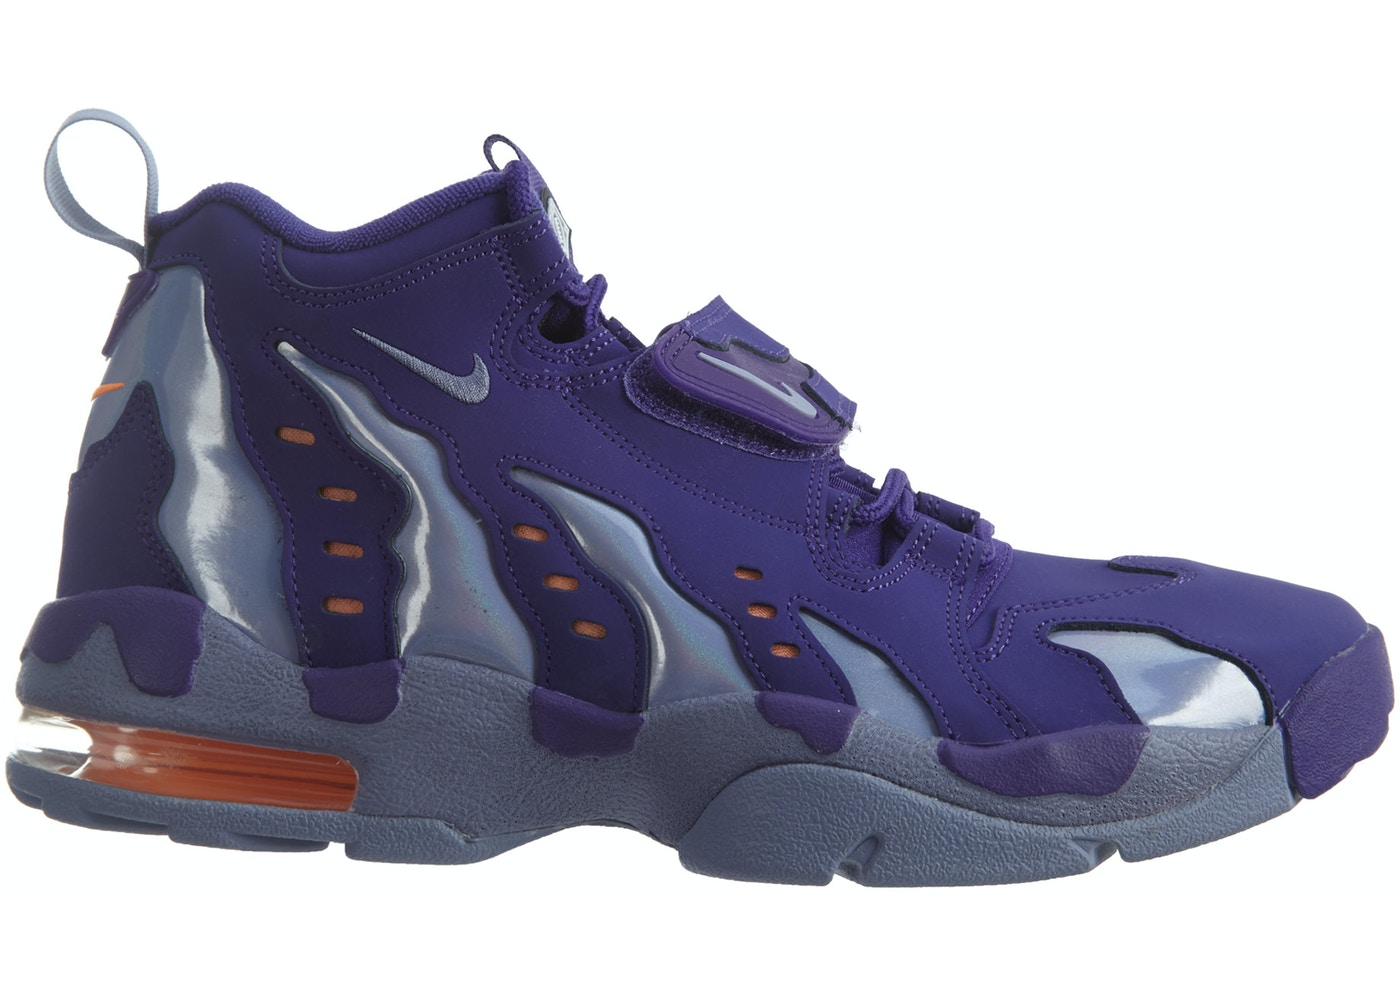 9e7b8a93c8 Sell. or Ask. Size --. View All Bids. Nike Air Dt Max 96 Crt Purple/Irn  Purple-Atomic Orange